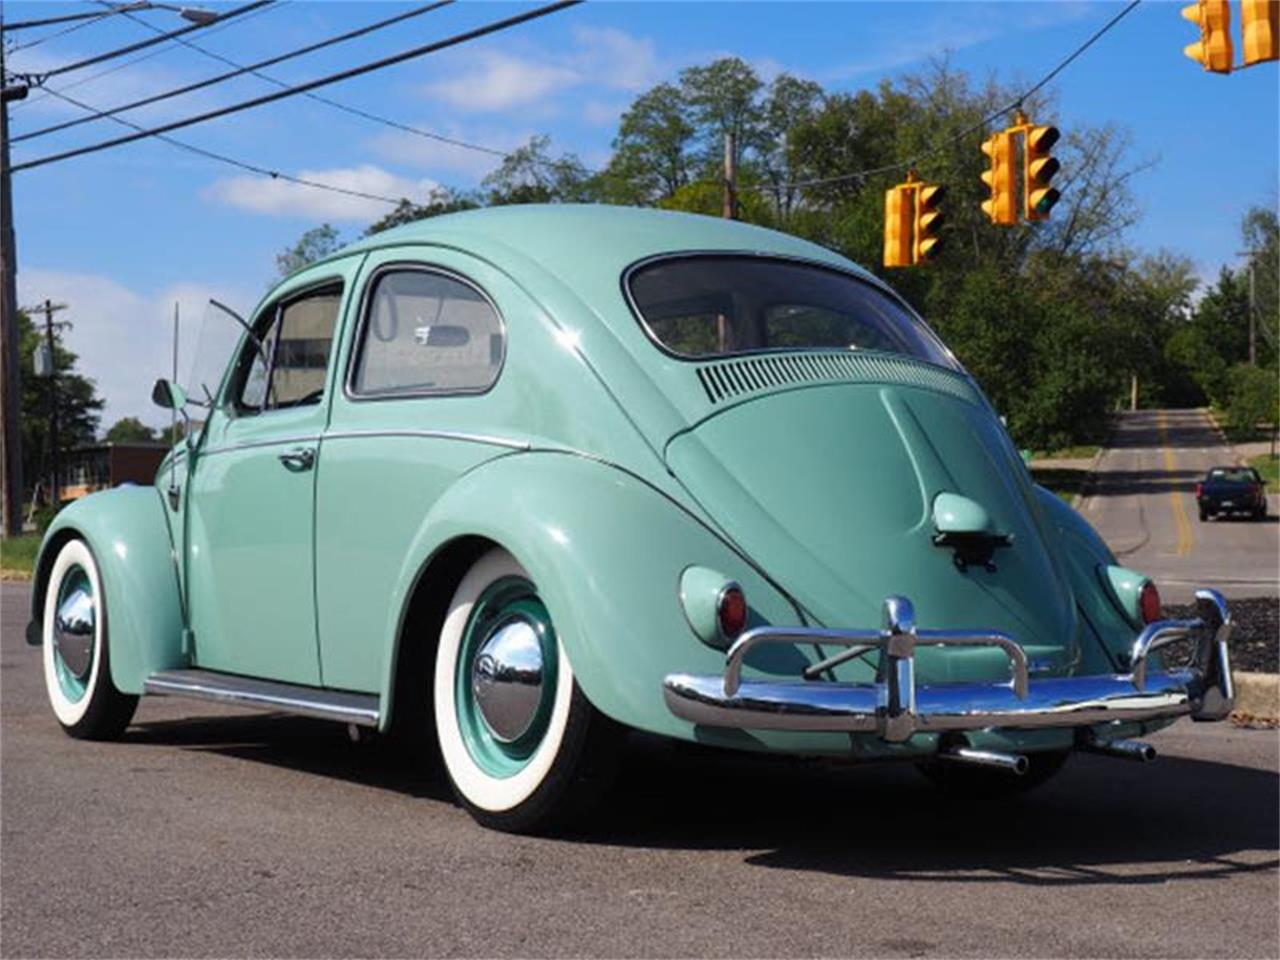 Large Picture of '61 Volkswagen Beetle located in Ohio - $19,999.00 Offered by Cincinnati Auto Wholesale - MBMH